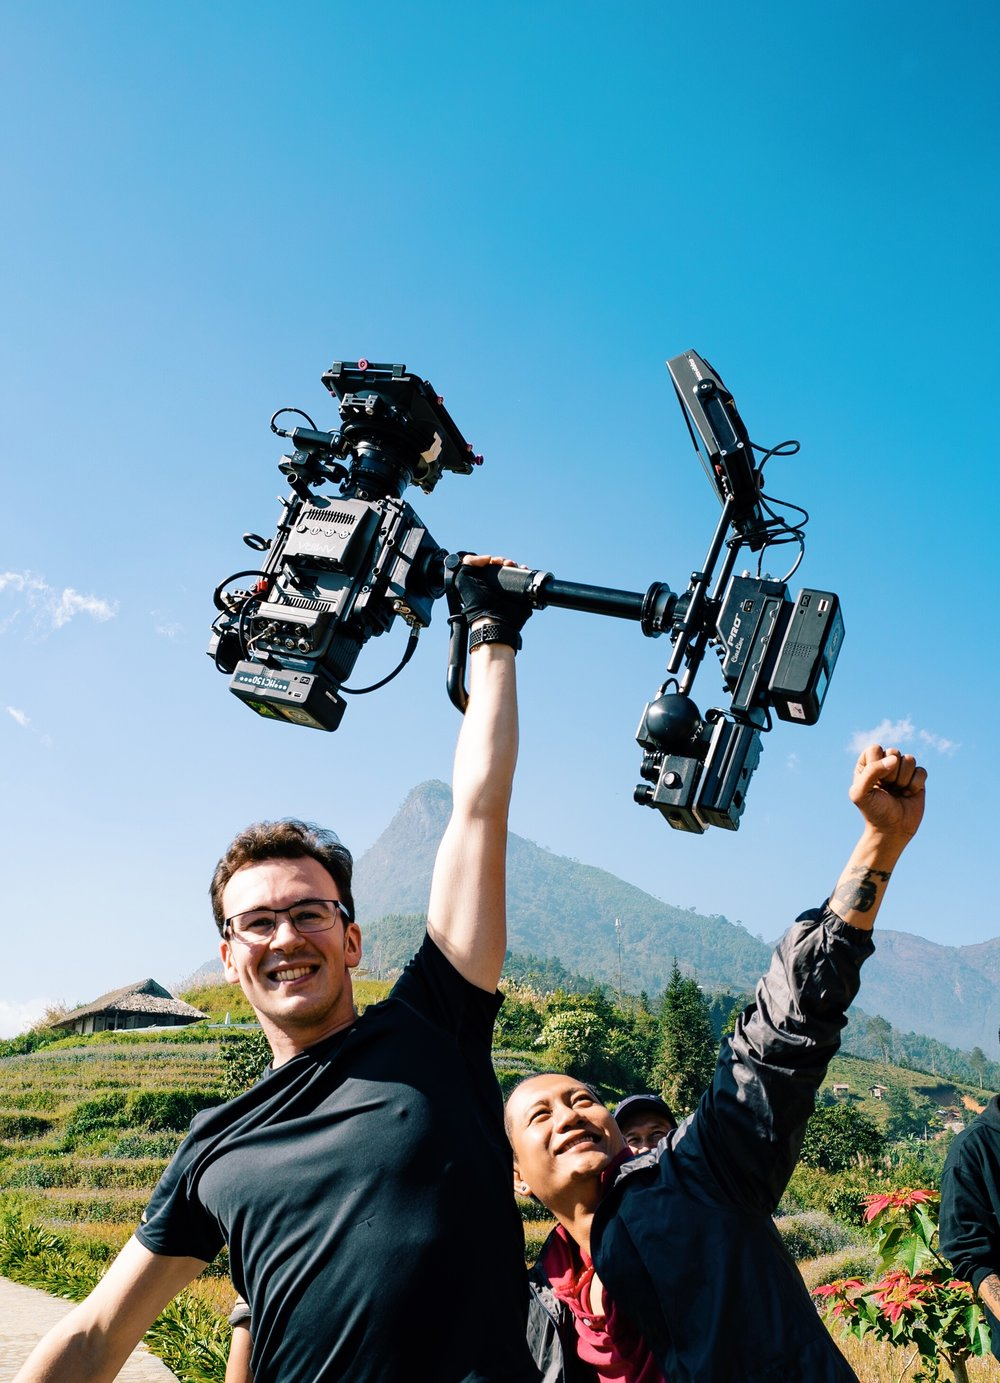 """GEAR RENTAL - We have a fully-stocked in-house Arri Alexa, accessories, and Quasar kit available for your production needs. For rental inquiries, contact us using the form on this page with """"GEAR RENTAL"""" in the subject line."""